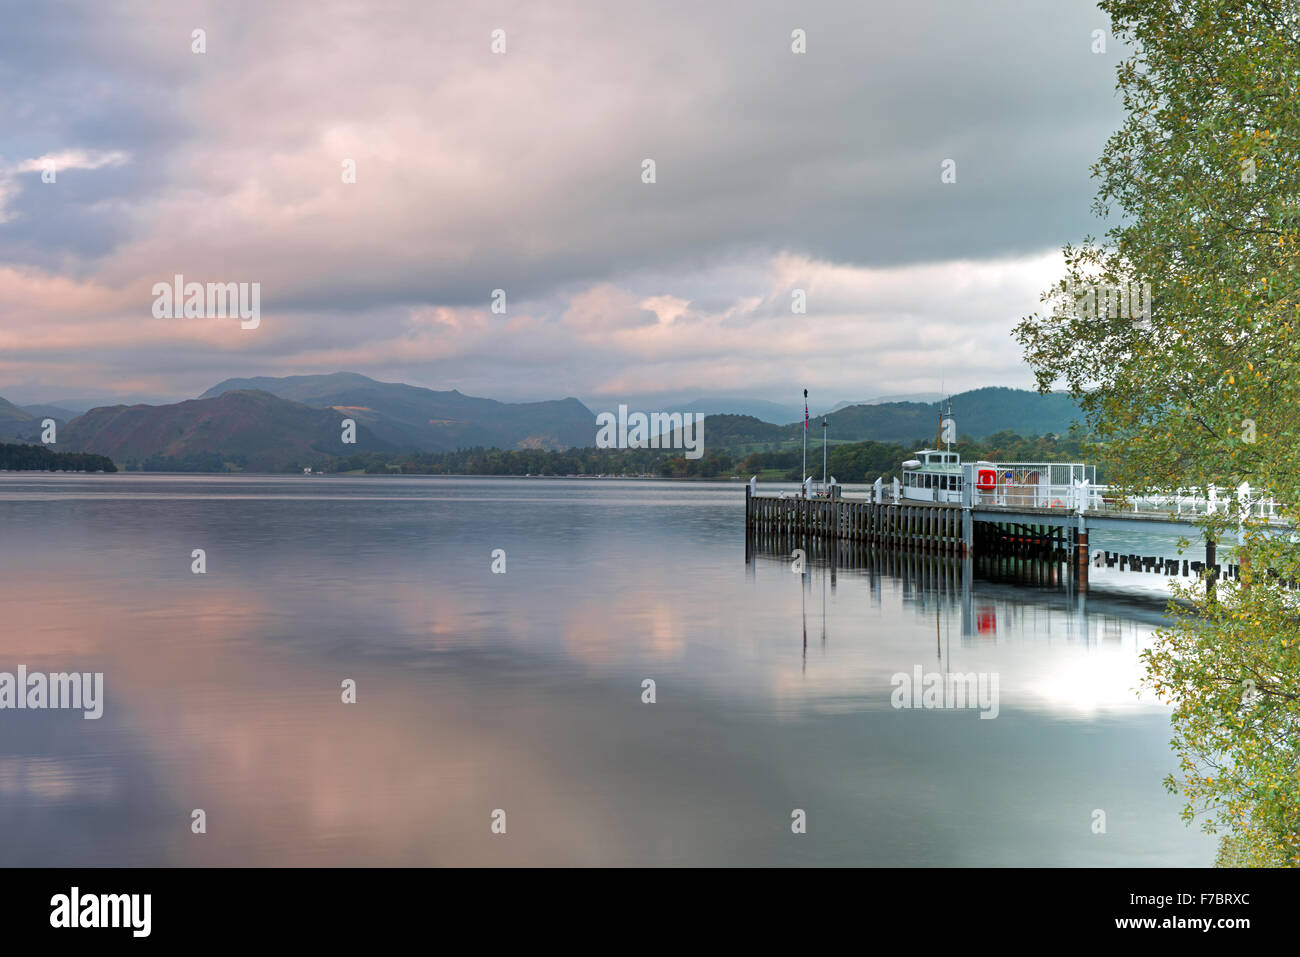 Steamer and Ferry Landing on Ullswater Lake, Pooley Bridge, Lake District National Park, Cumbria, England, Uk, Gb - Stock Image